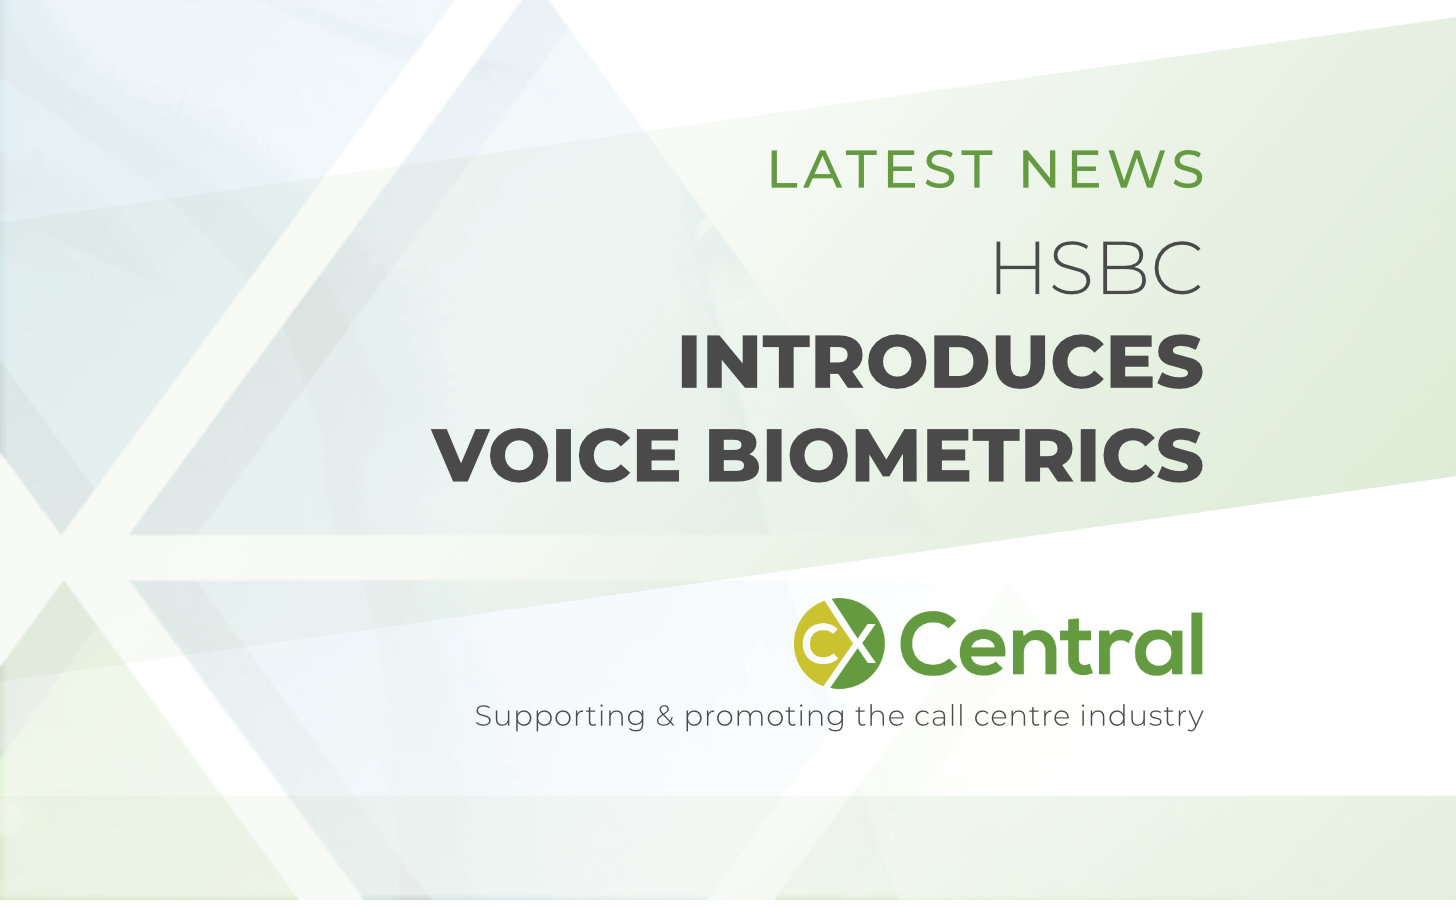 HSBC introduces Voice Biometrics into their contact centre